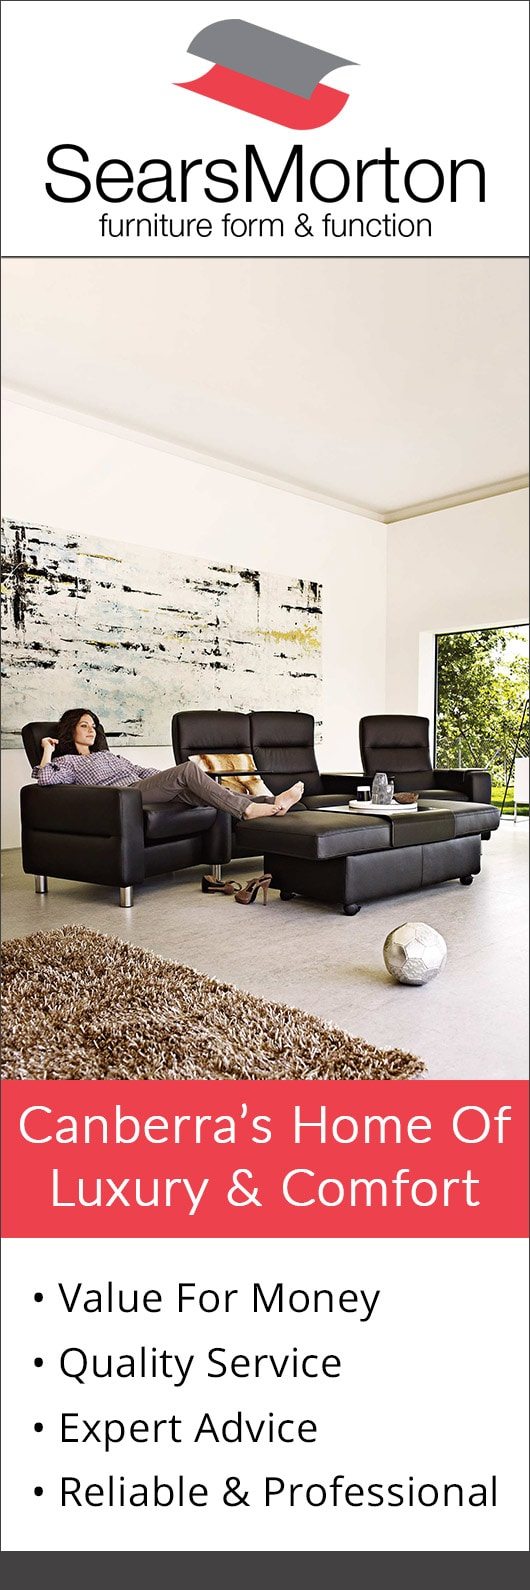 Furniture Stores Canberra Sears Morton Furniture Stores Shops Canberra Airport